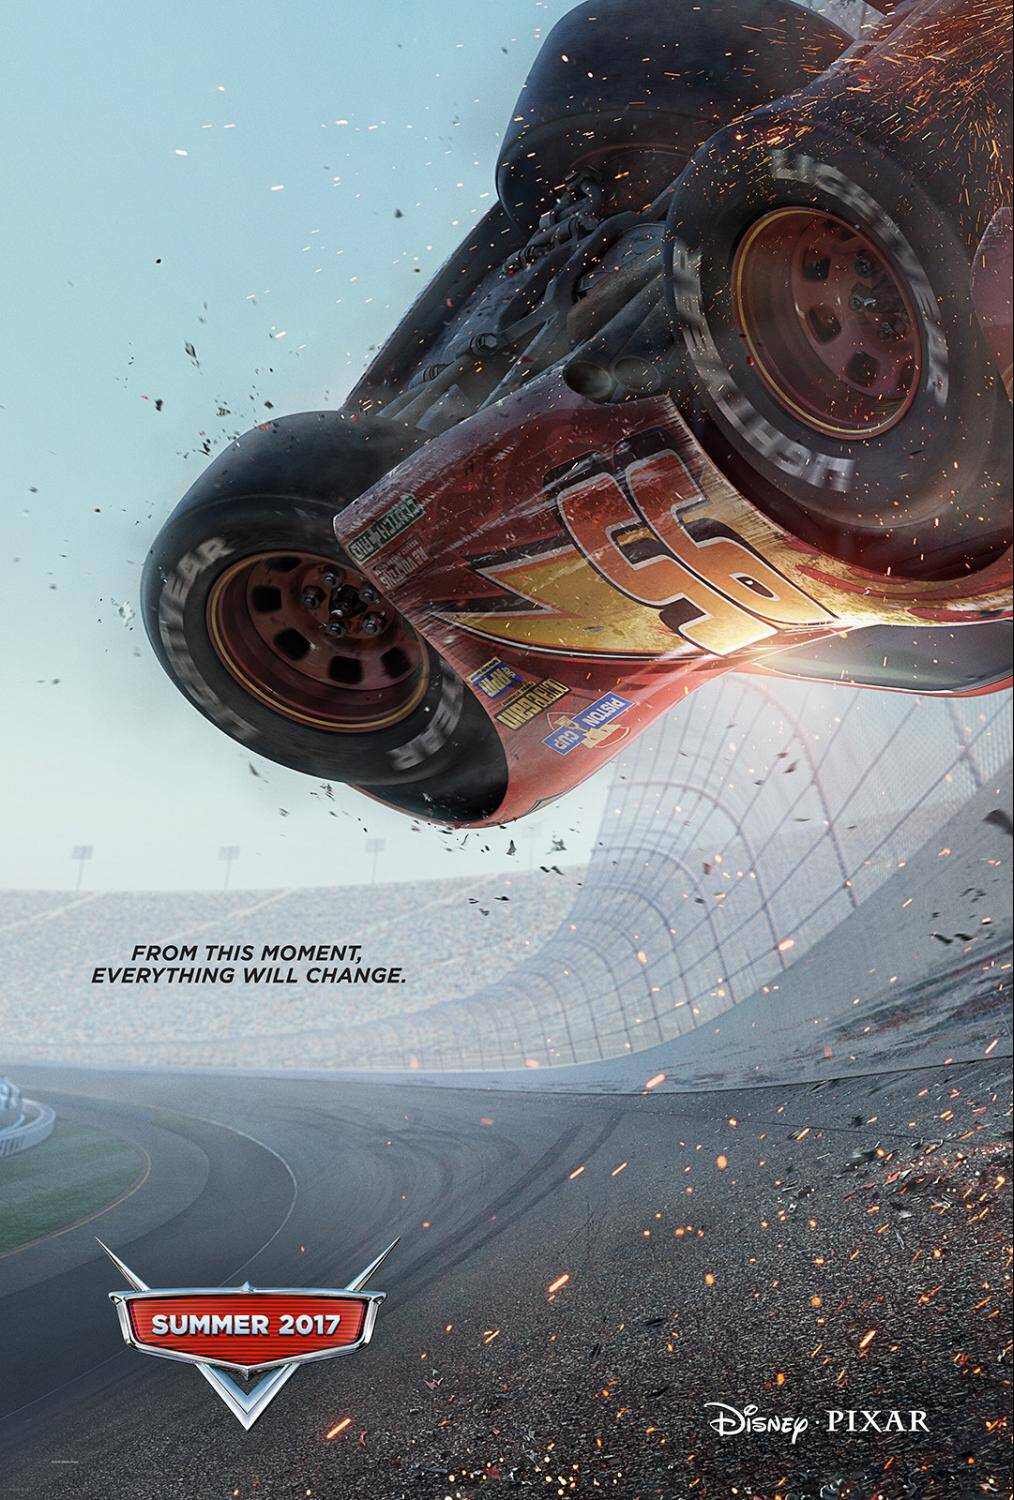 Cars 3 is in theaters this summer, June 16, 2017! Check out this extended clip and meet the brand new characters! Vroom vroom!